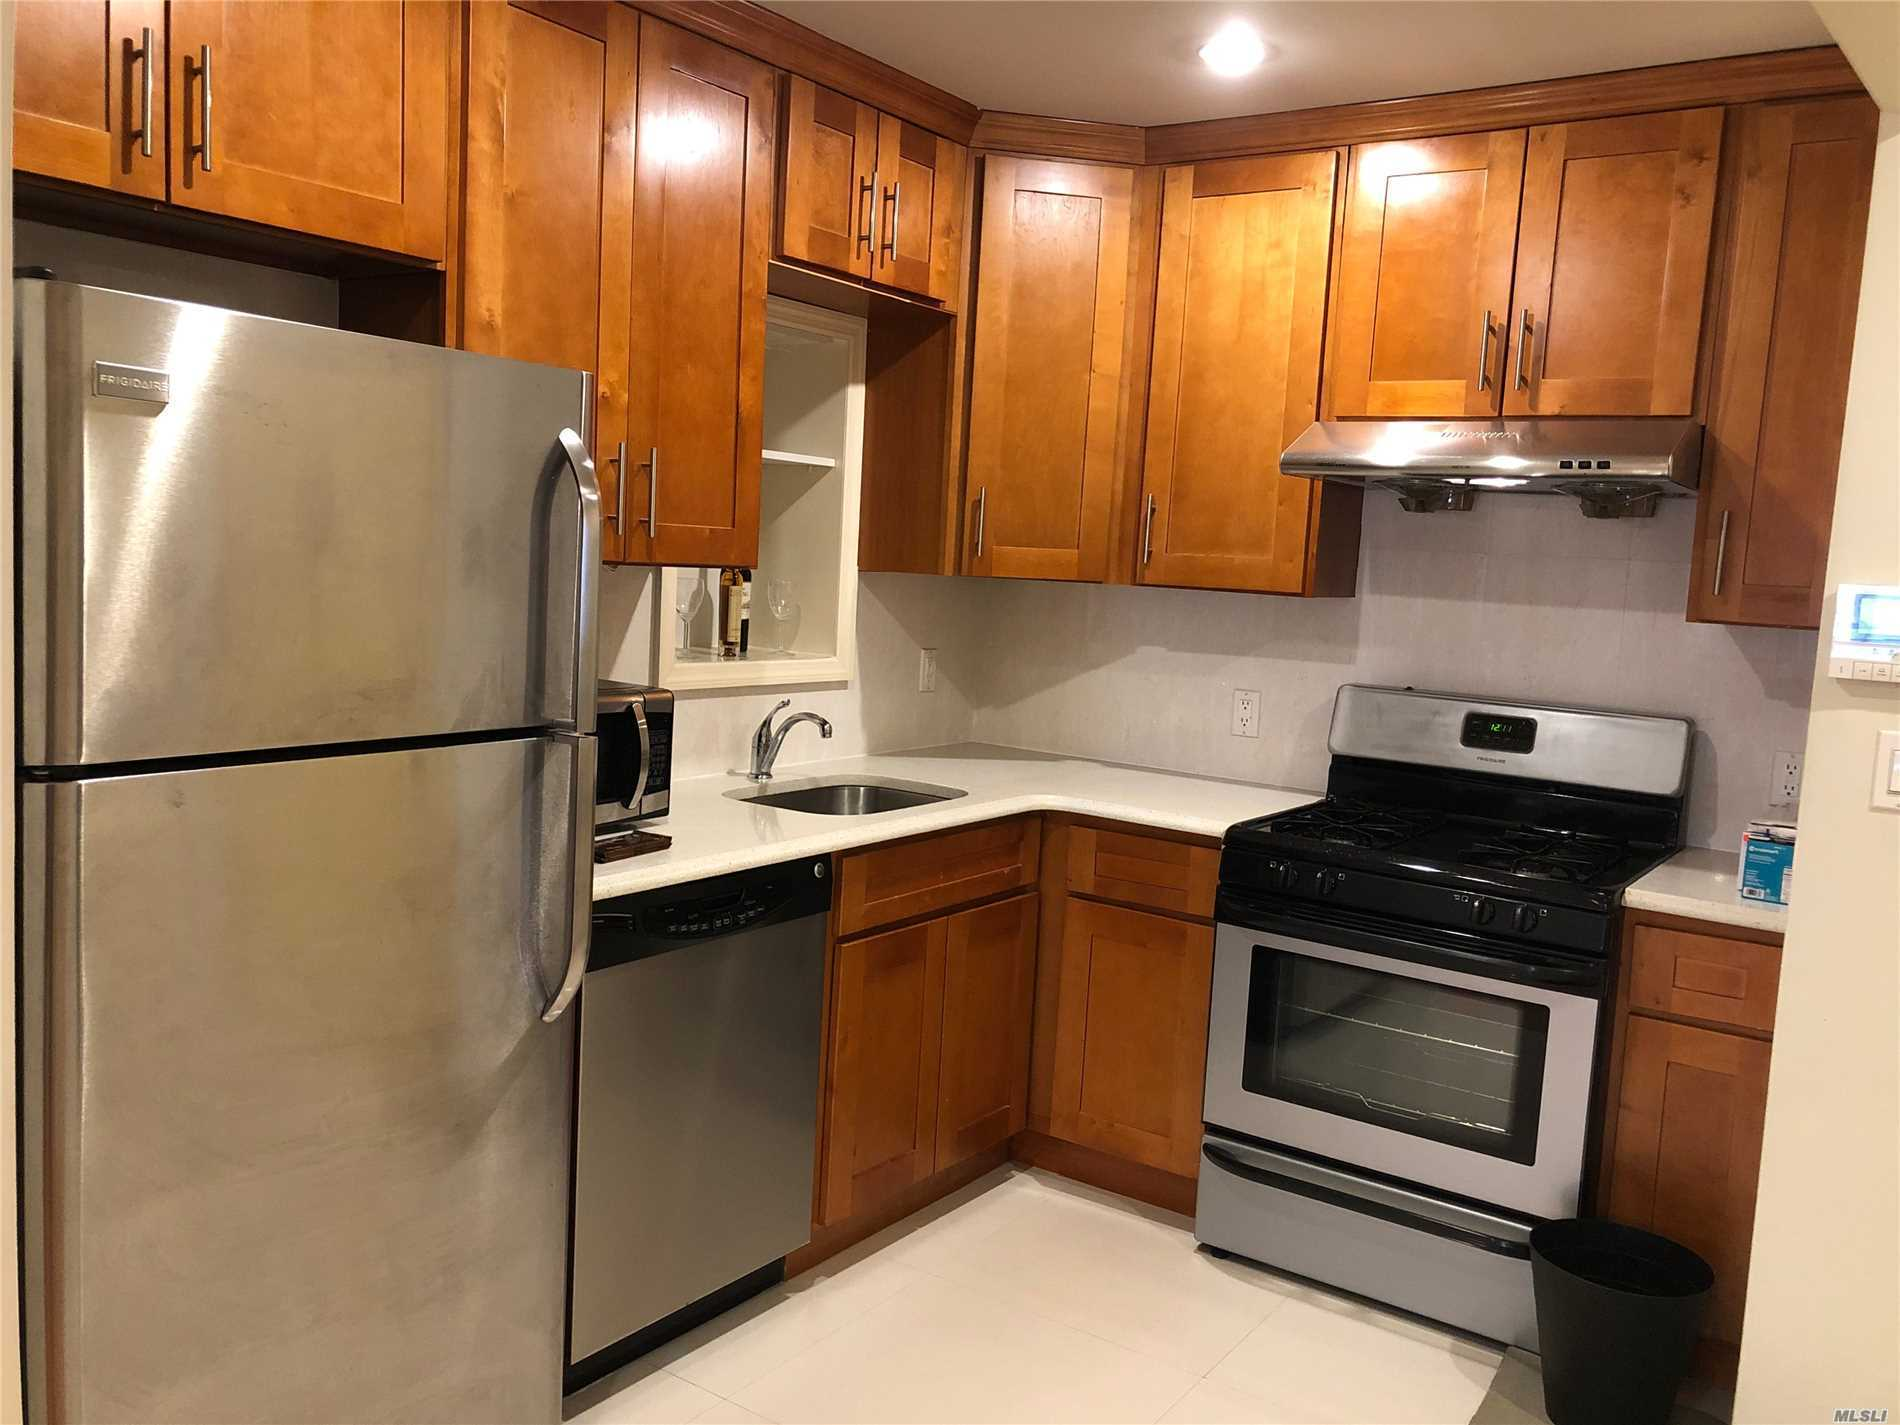 Beautiful 1 Bedroom Apartment Located In The Prime Location Of Downtown Flushing. New Kitchen With Granite Top. Stainless Steel Appliances. Wood Floor. 6 Minutes Walk To 7 Train, Macy's Dept. Store And Restaurants. Must See.............